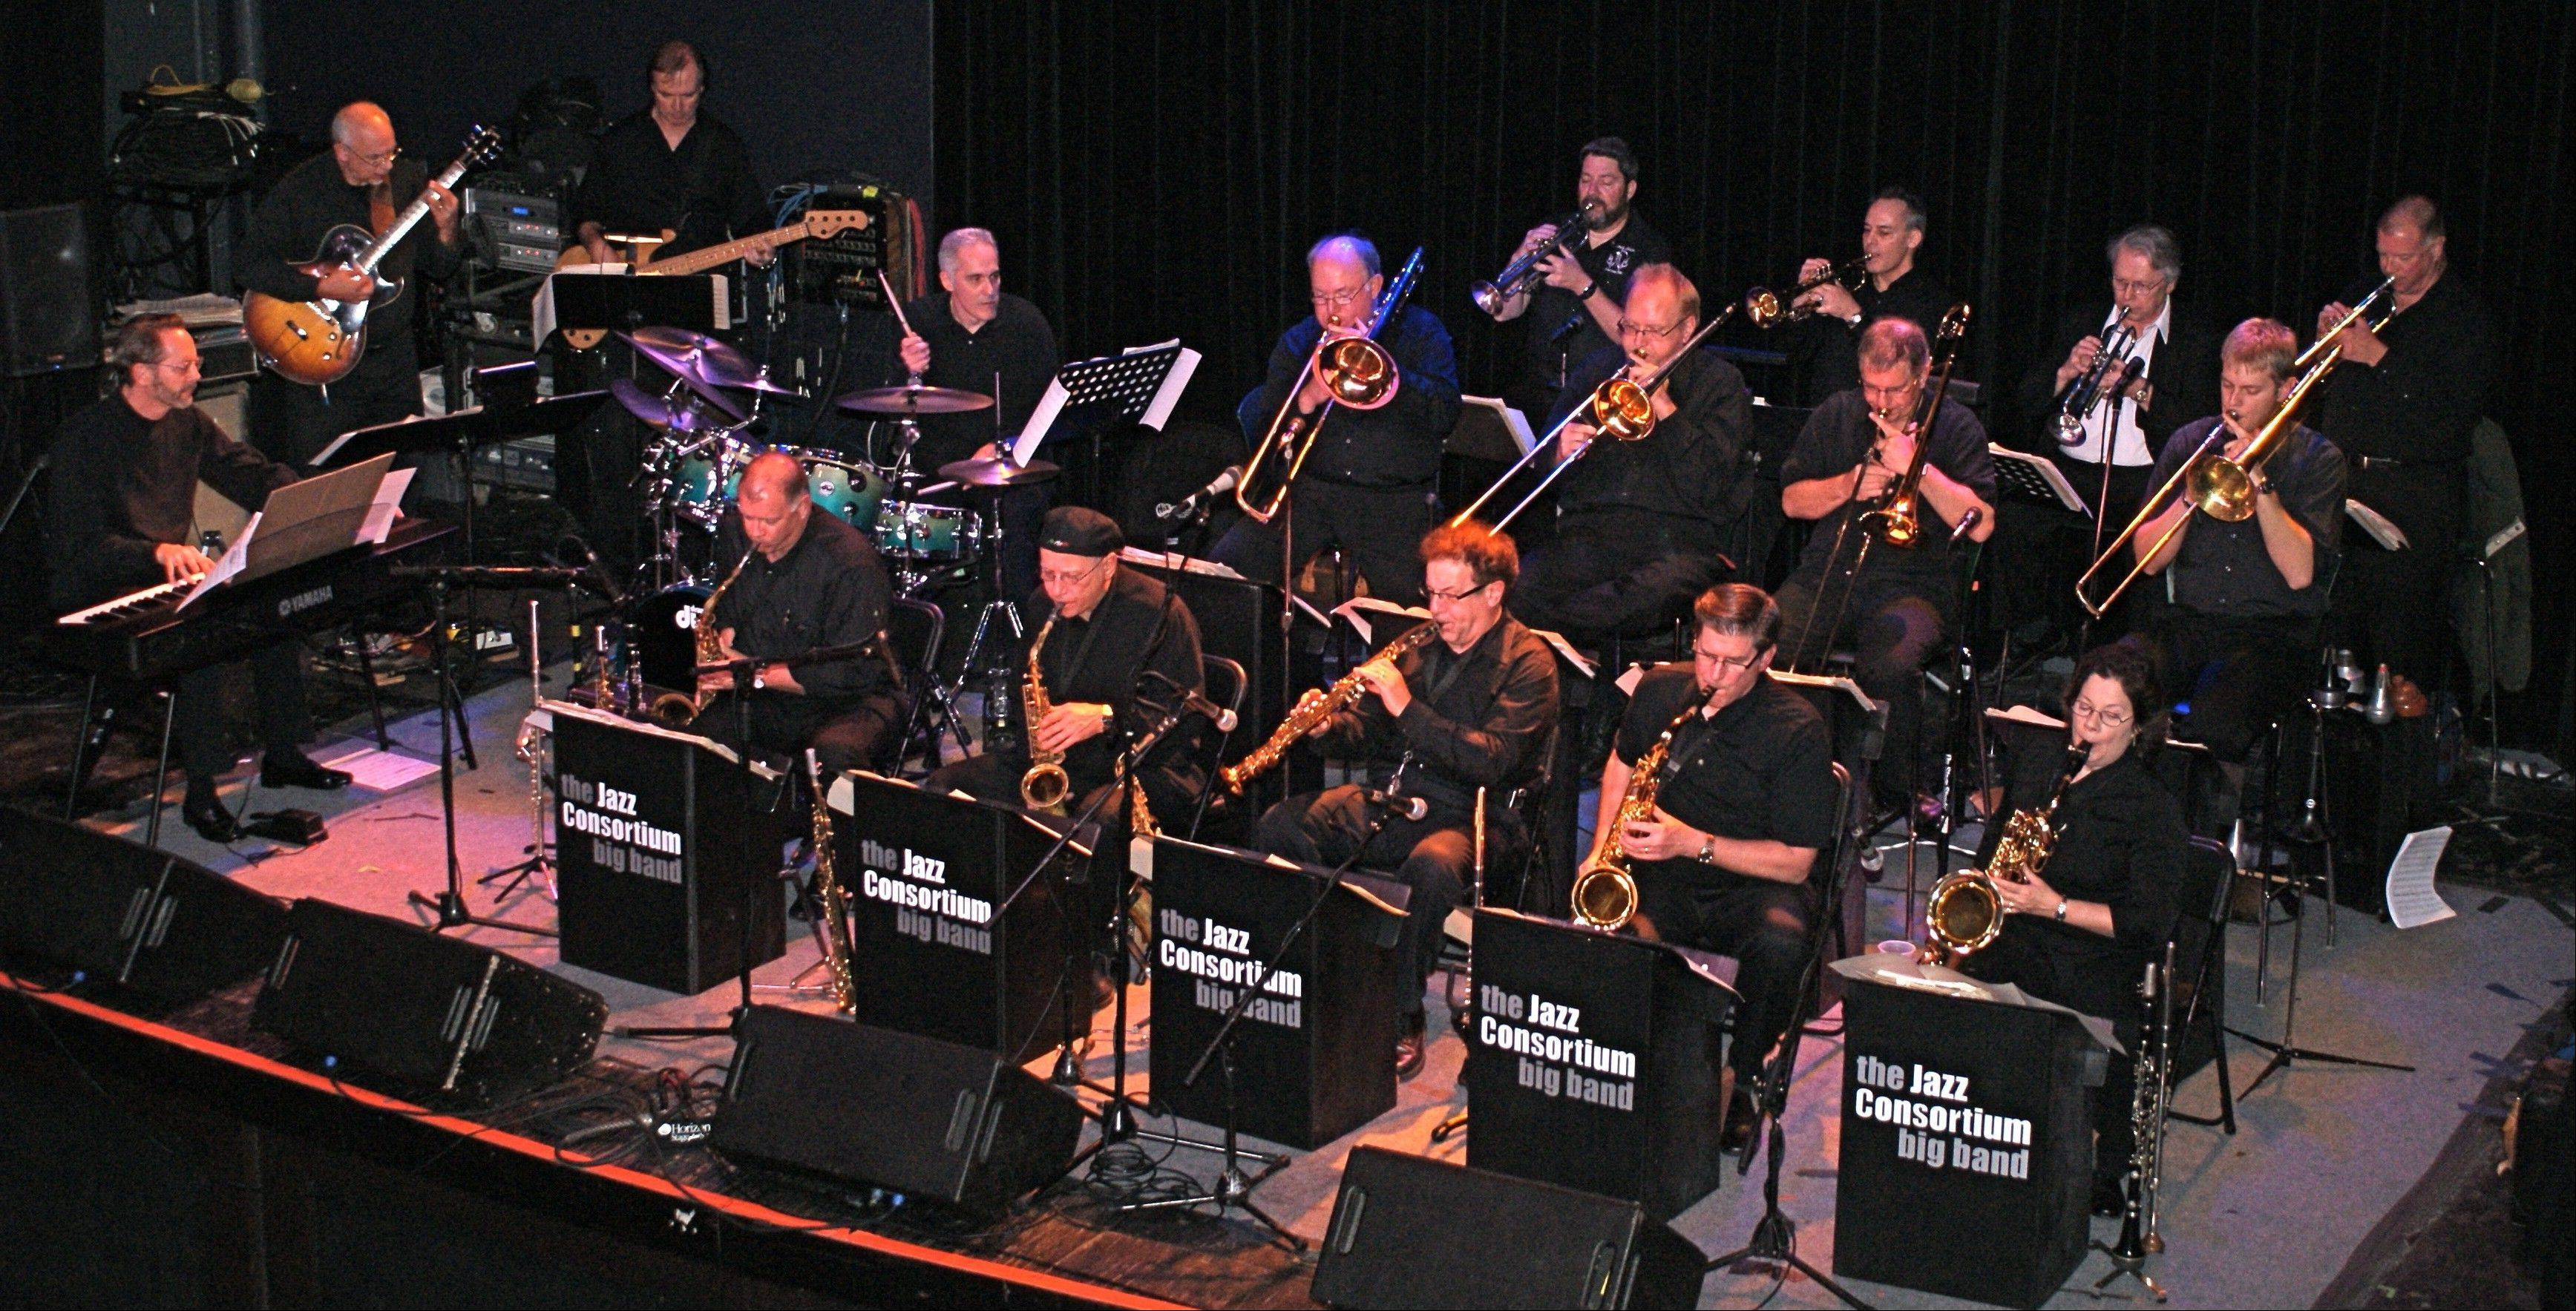 The Jazz Consortium Big Band celebrates its second anniversary at Durty Nellie's in Palatine.